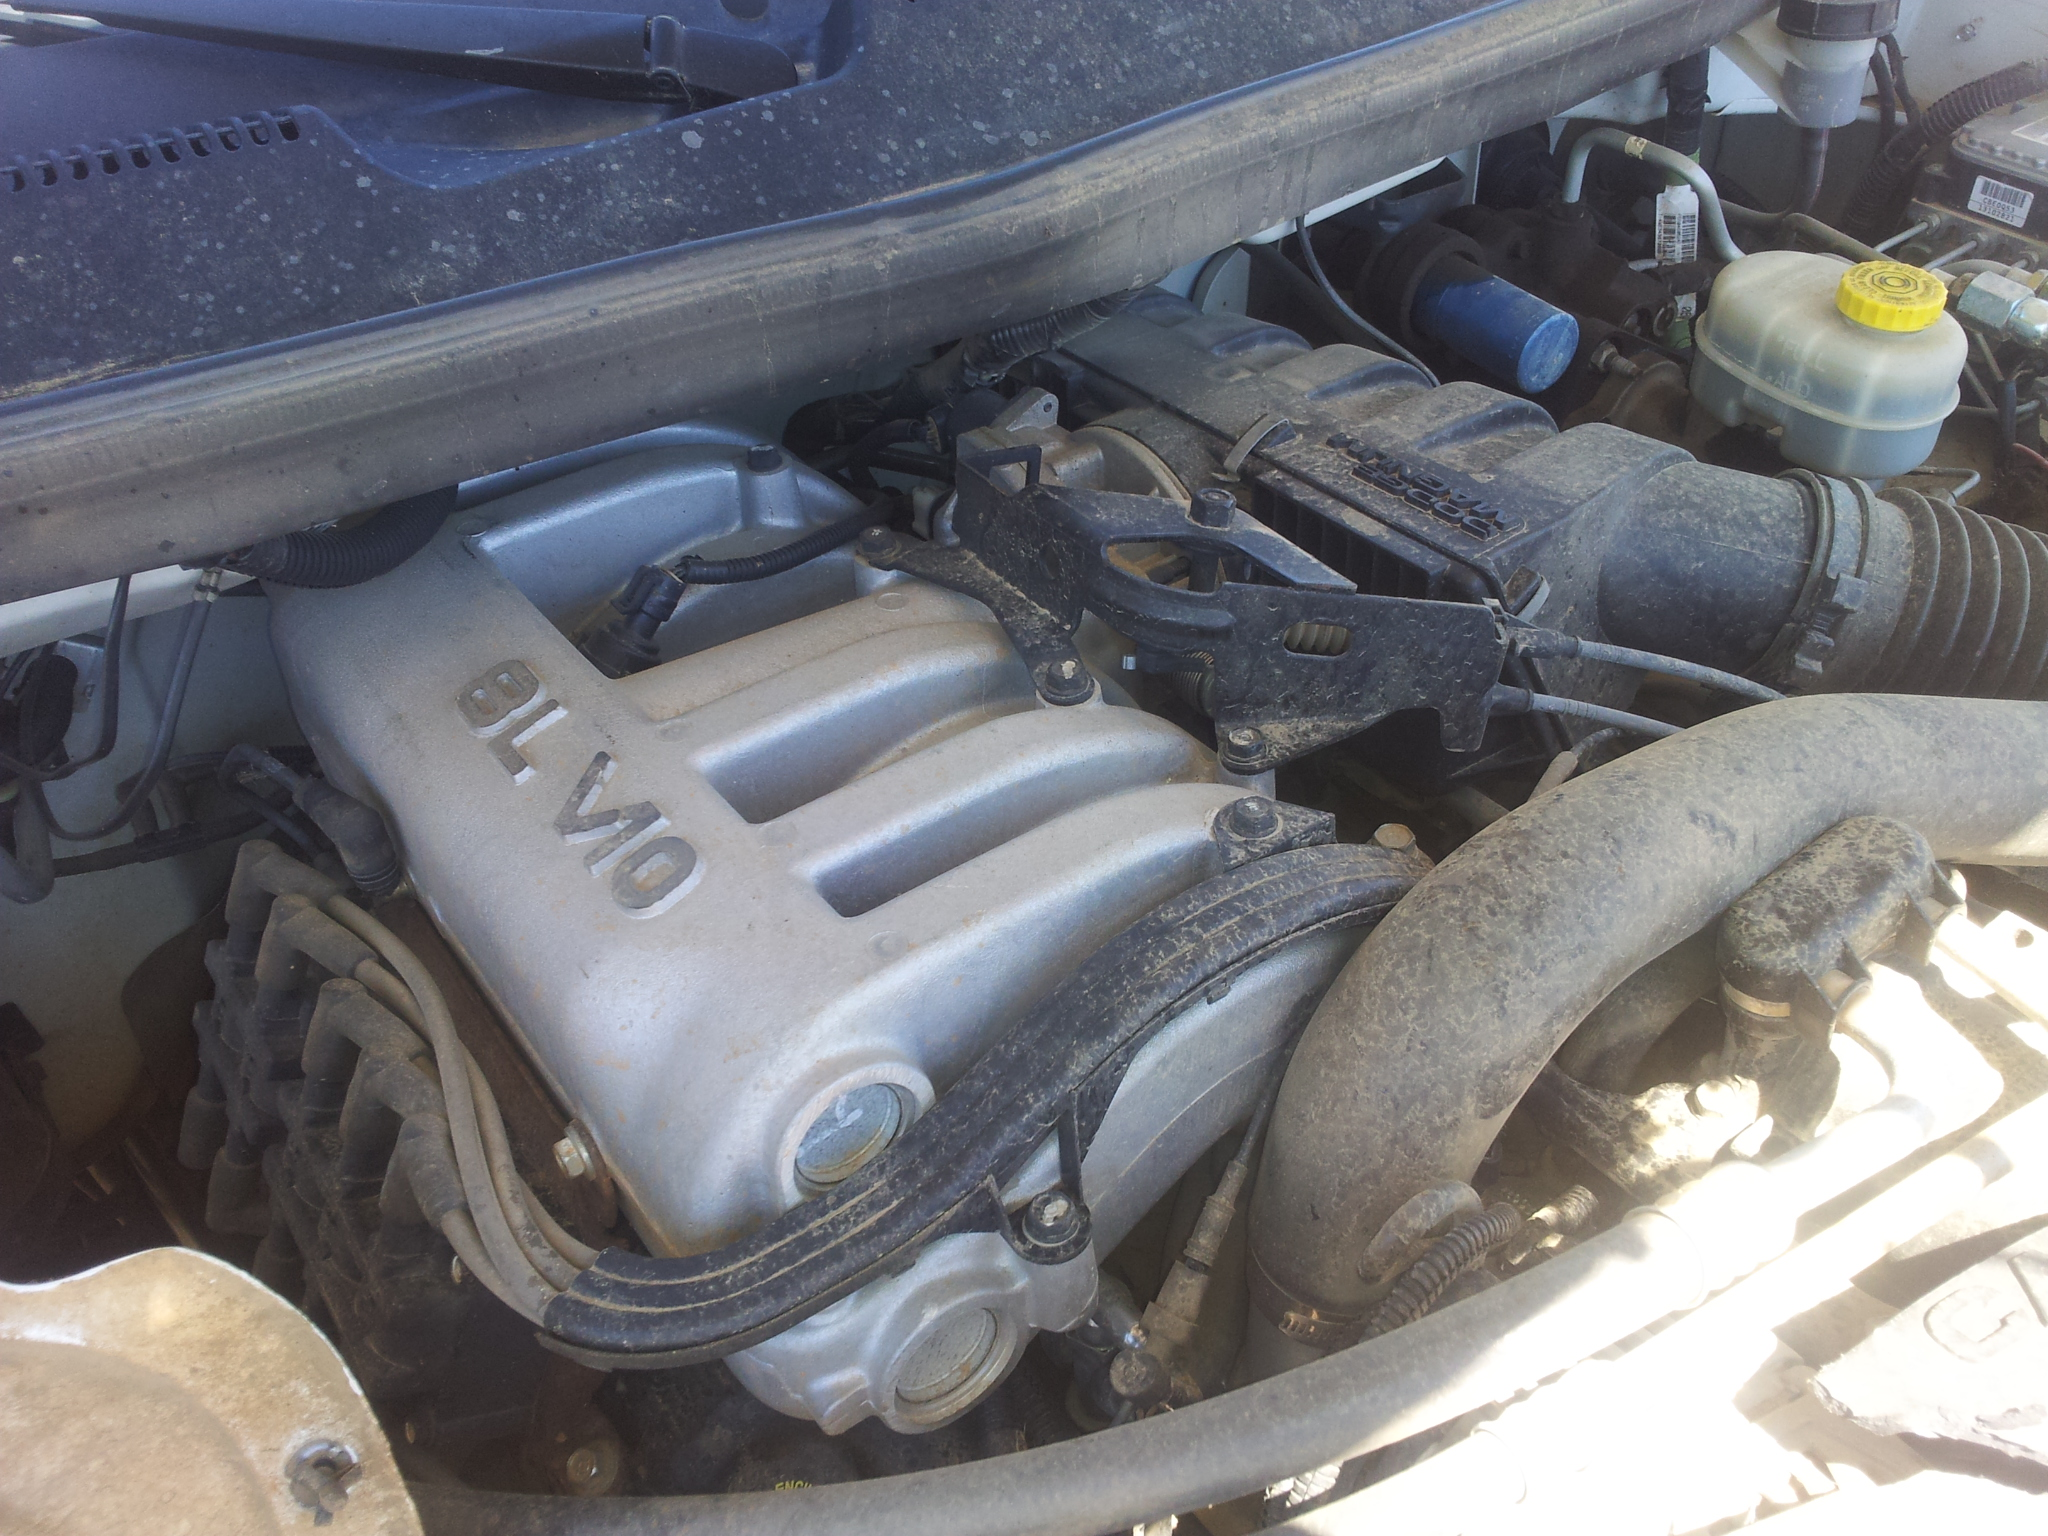 Used Truck Parts 1999 Dodge W3500 8 0l V10 Nv4500hd 5 Spd